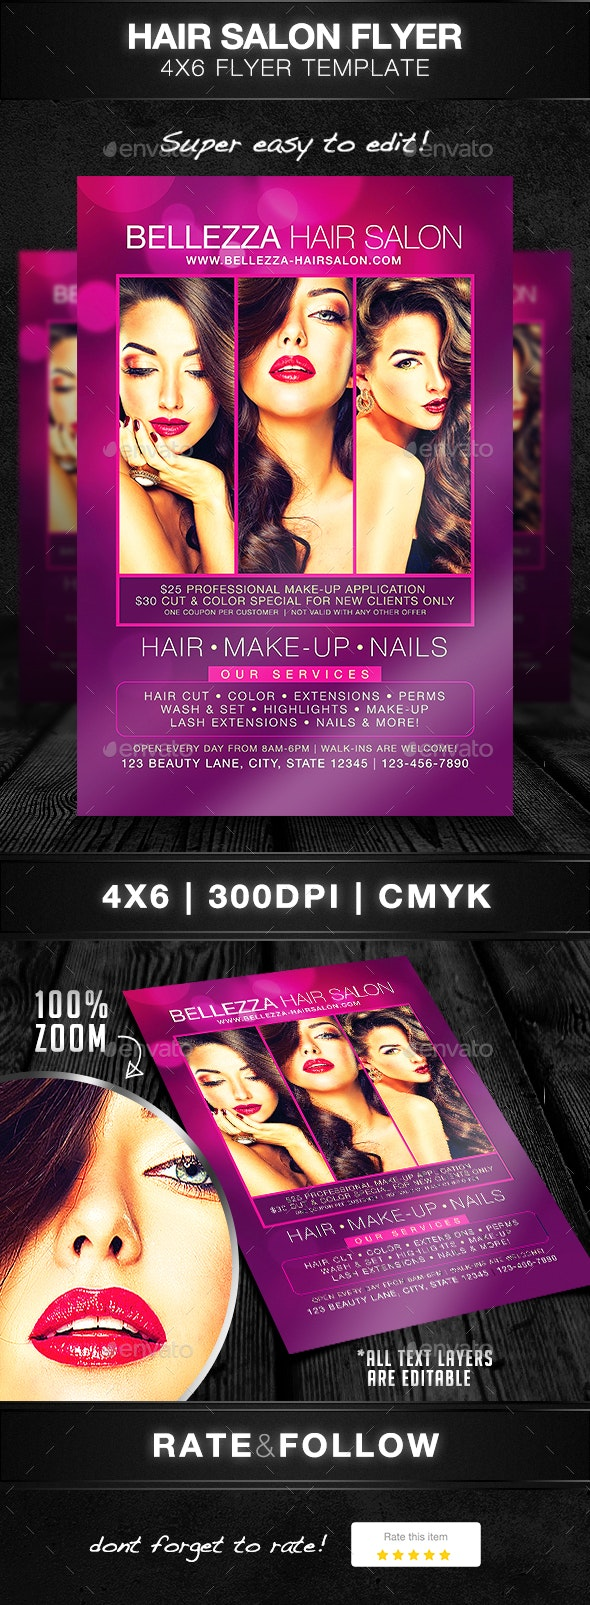 Hair Salon Flyer Template - Commerce Flyers